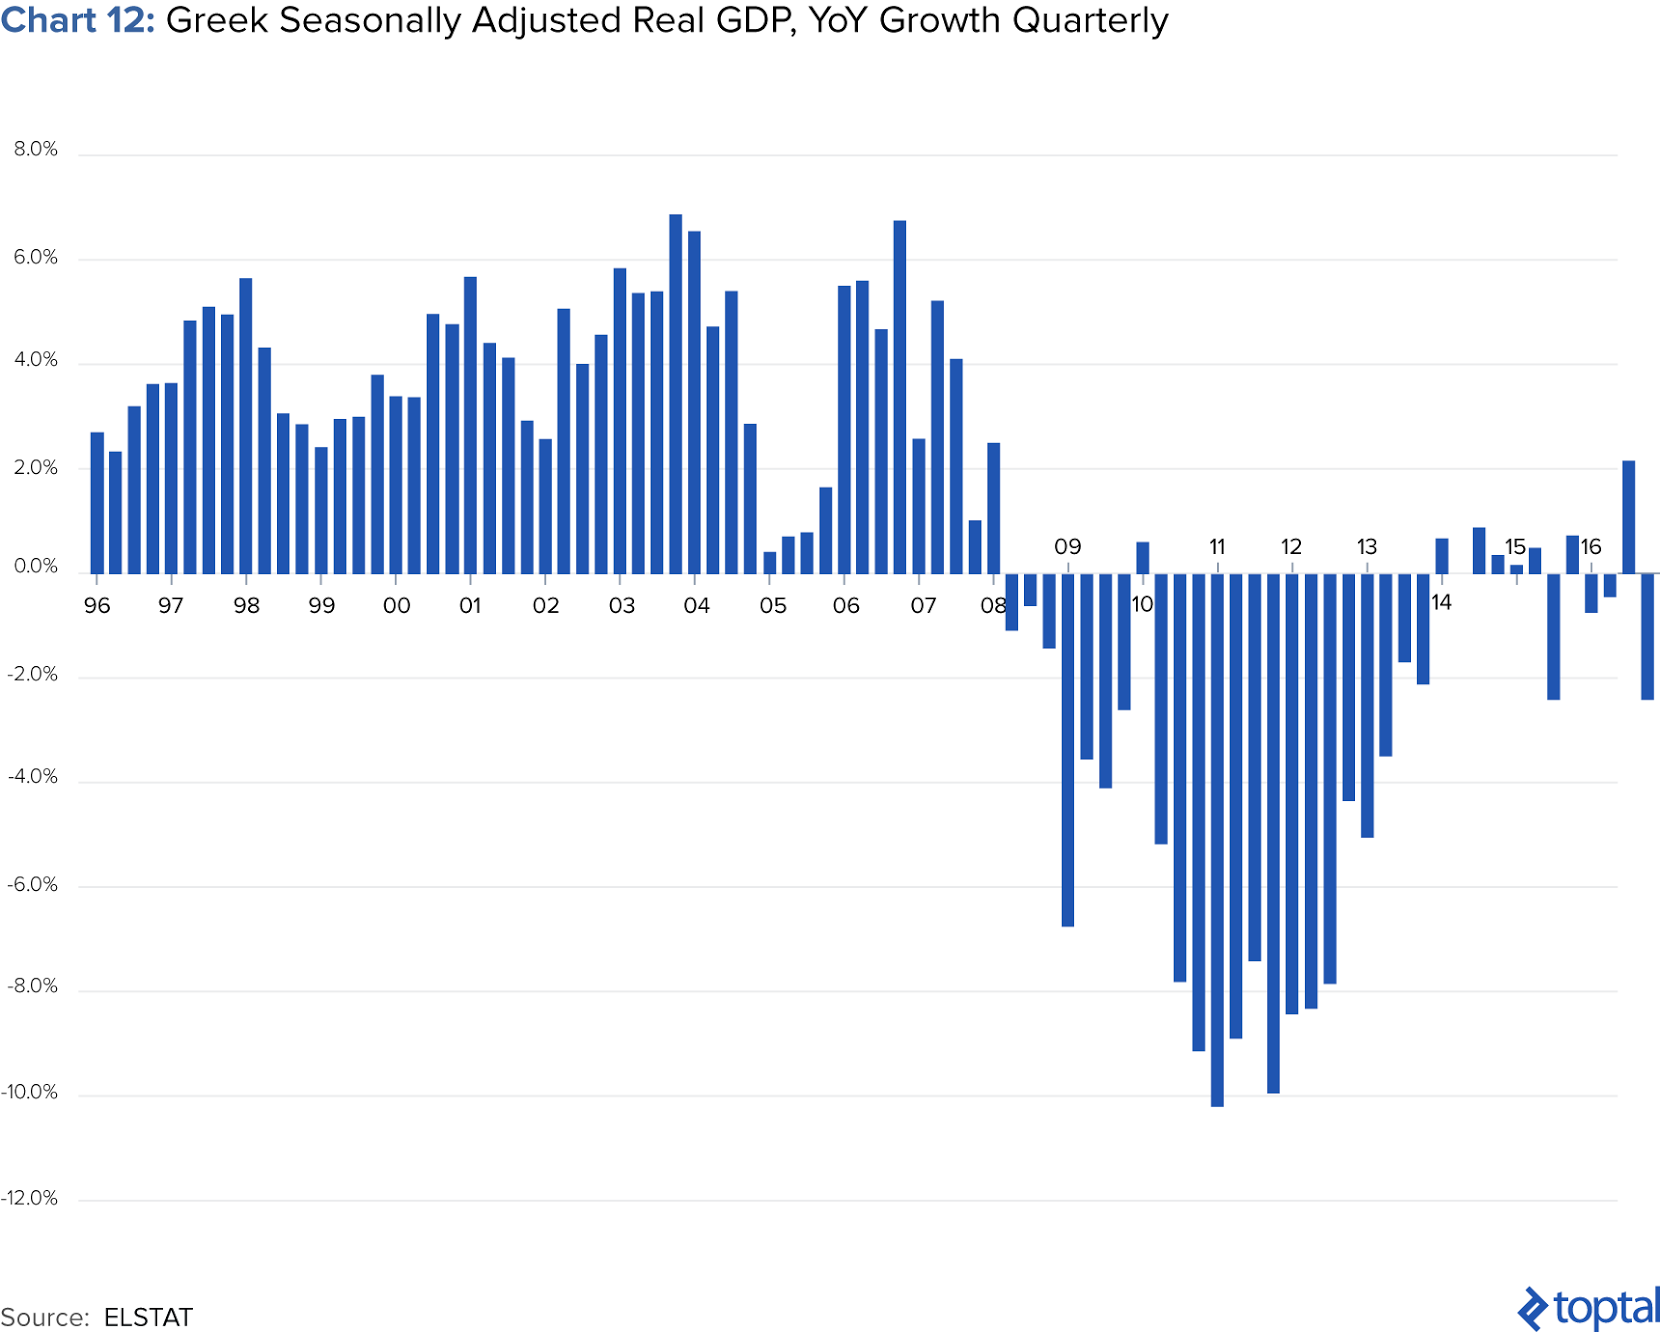 Chart 12: Greek Seasonally Adjusted Real GDP, YoY Growth Quarterly